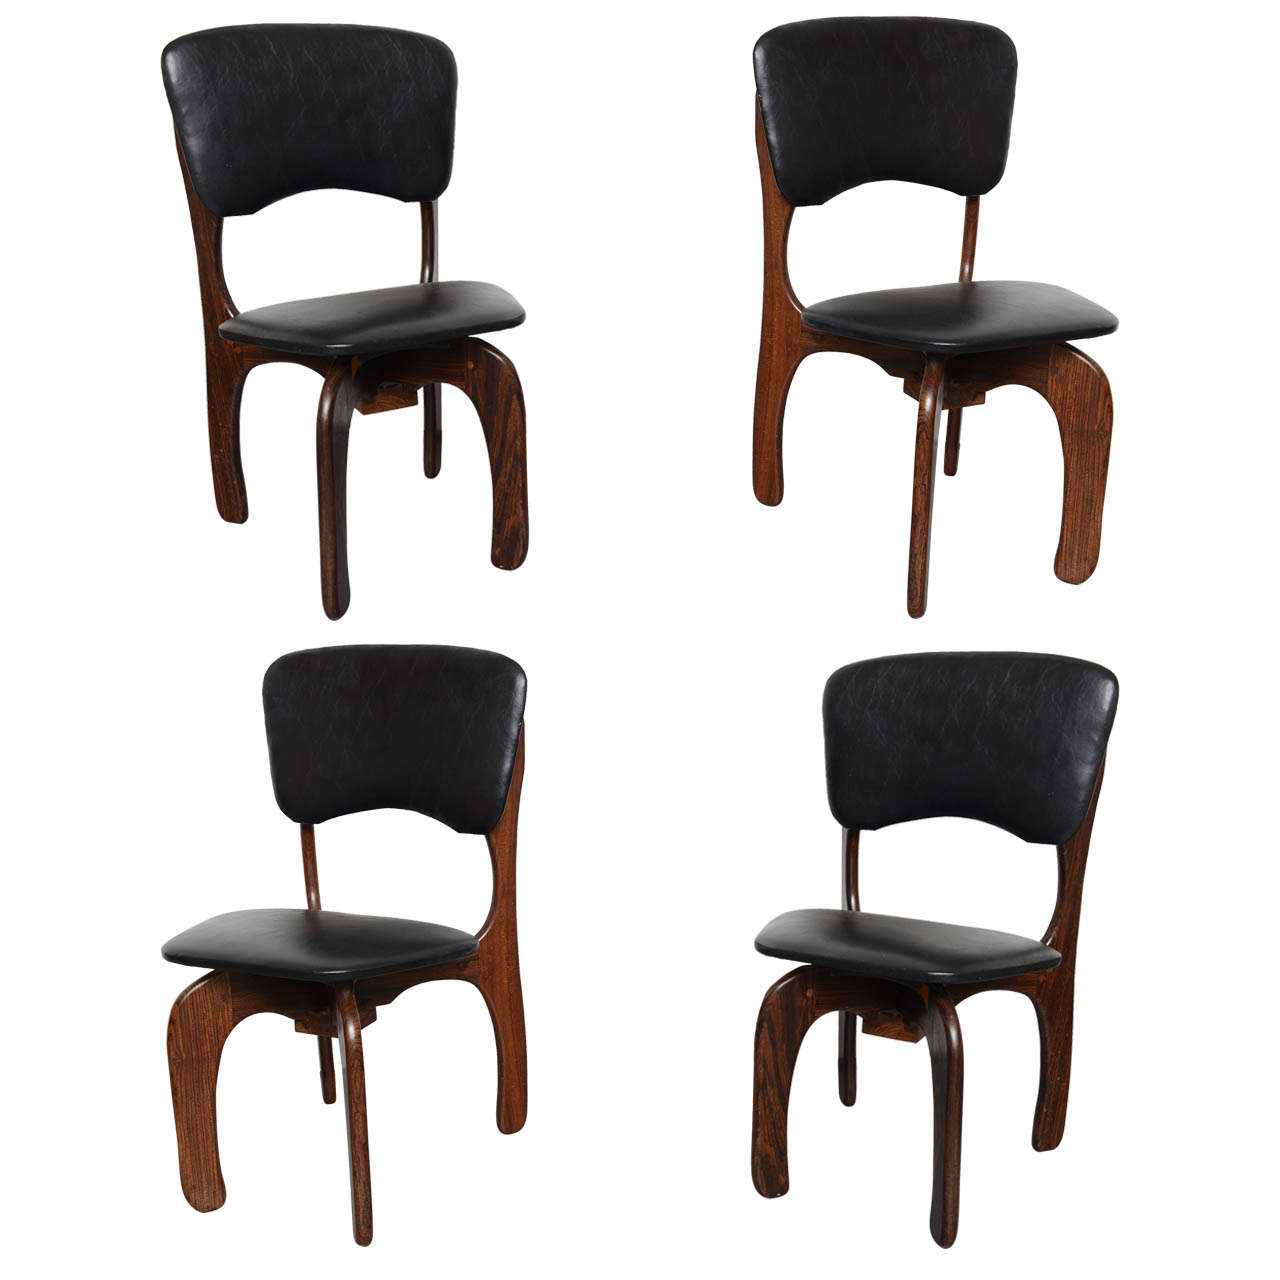 1970s Rosewood Chairs by Don Shoemaker, Mexico 1